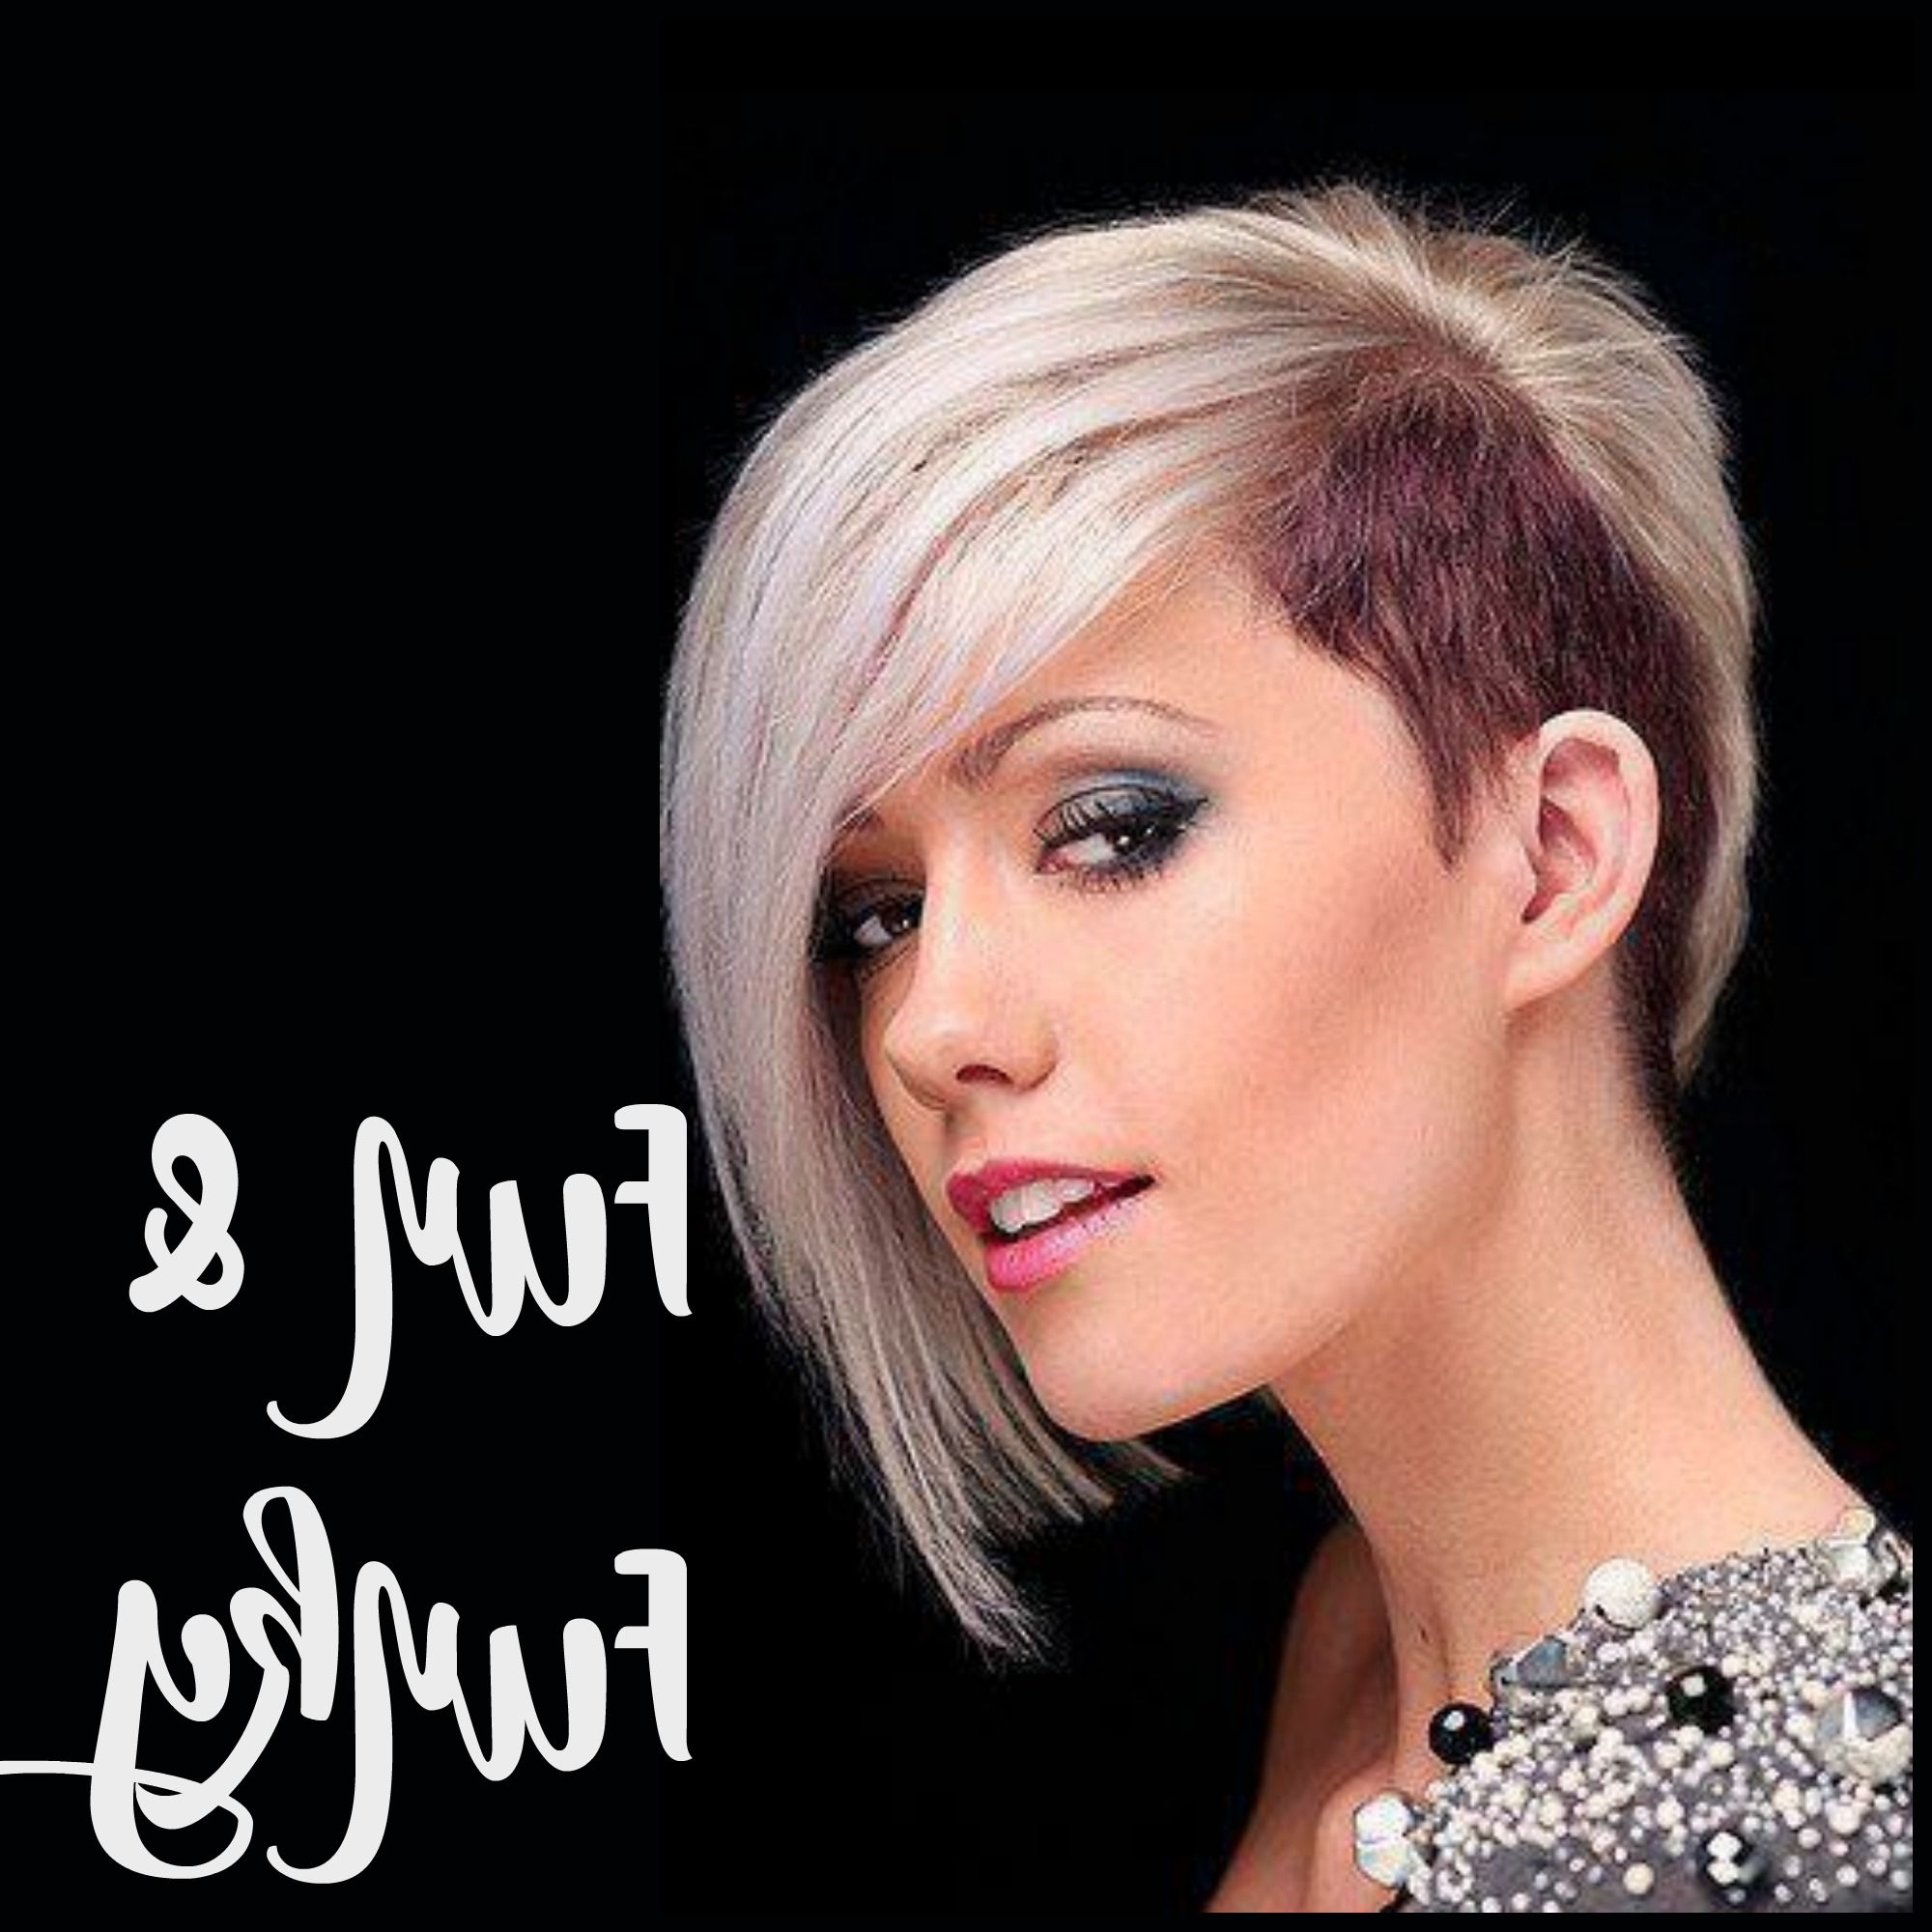 One Side Shave | Beauty (Hair, Nails, Make Up, Clothes, Shoes) In with regard to Short Haircuts With One Side Shaved